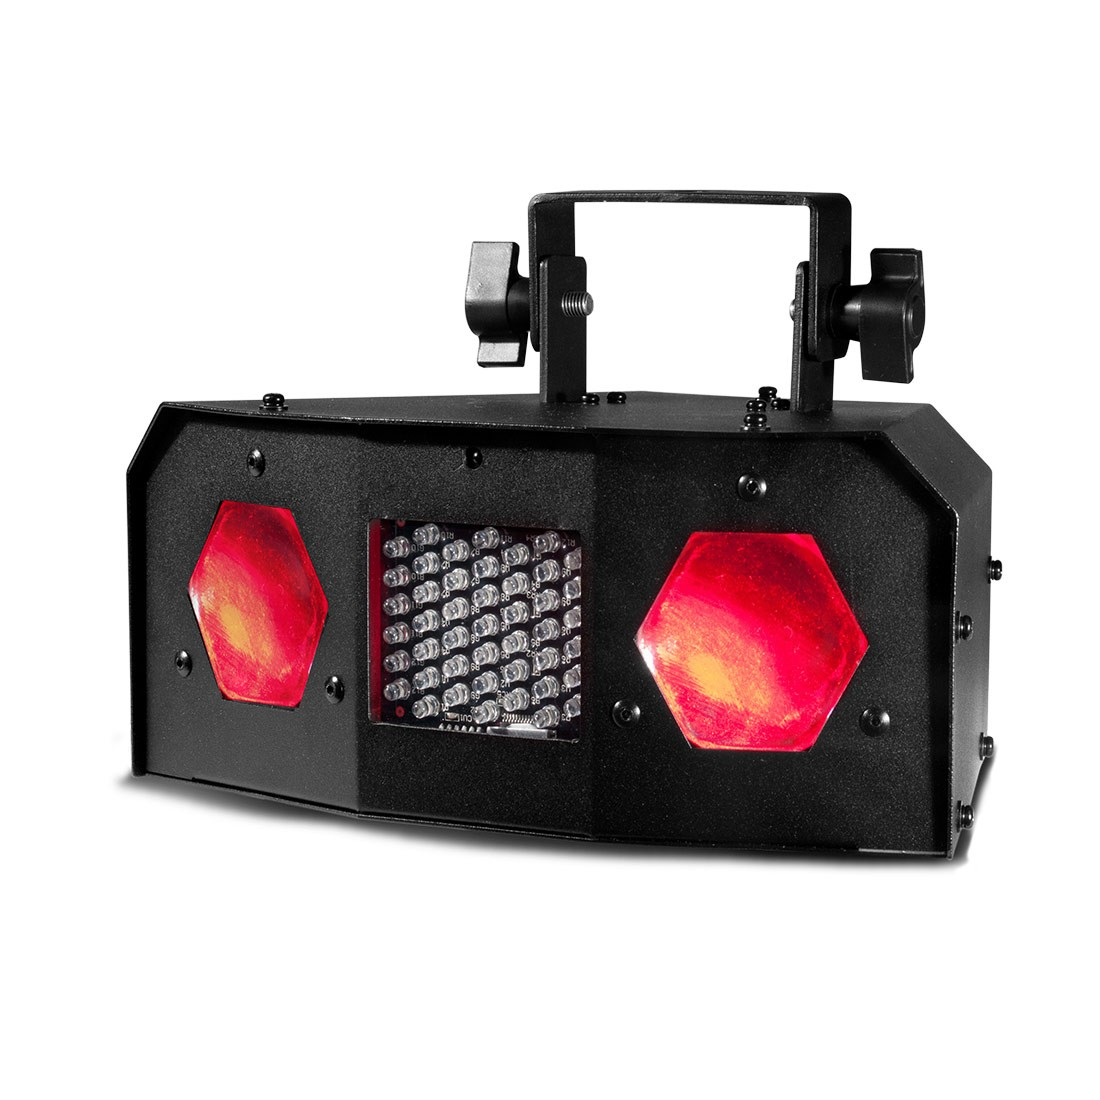 American Dj Dual Gem Pulse Lighting Effect